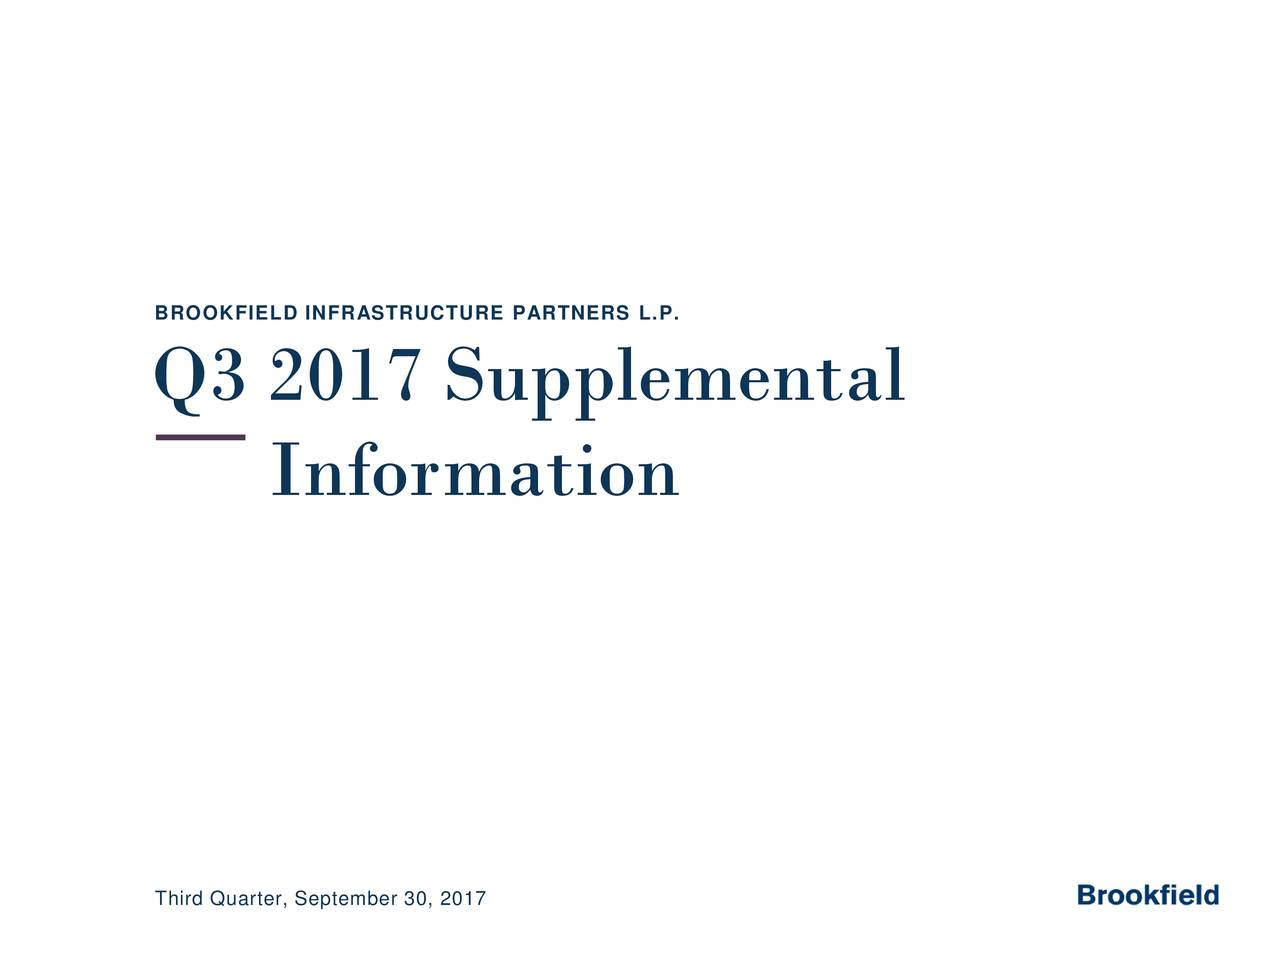 Q3 2017 Supplemental Information Third Quarter, September 30, 2017